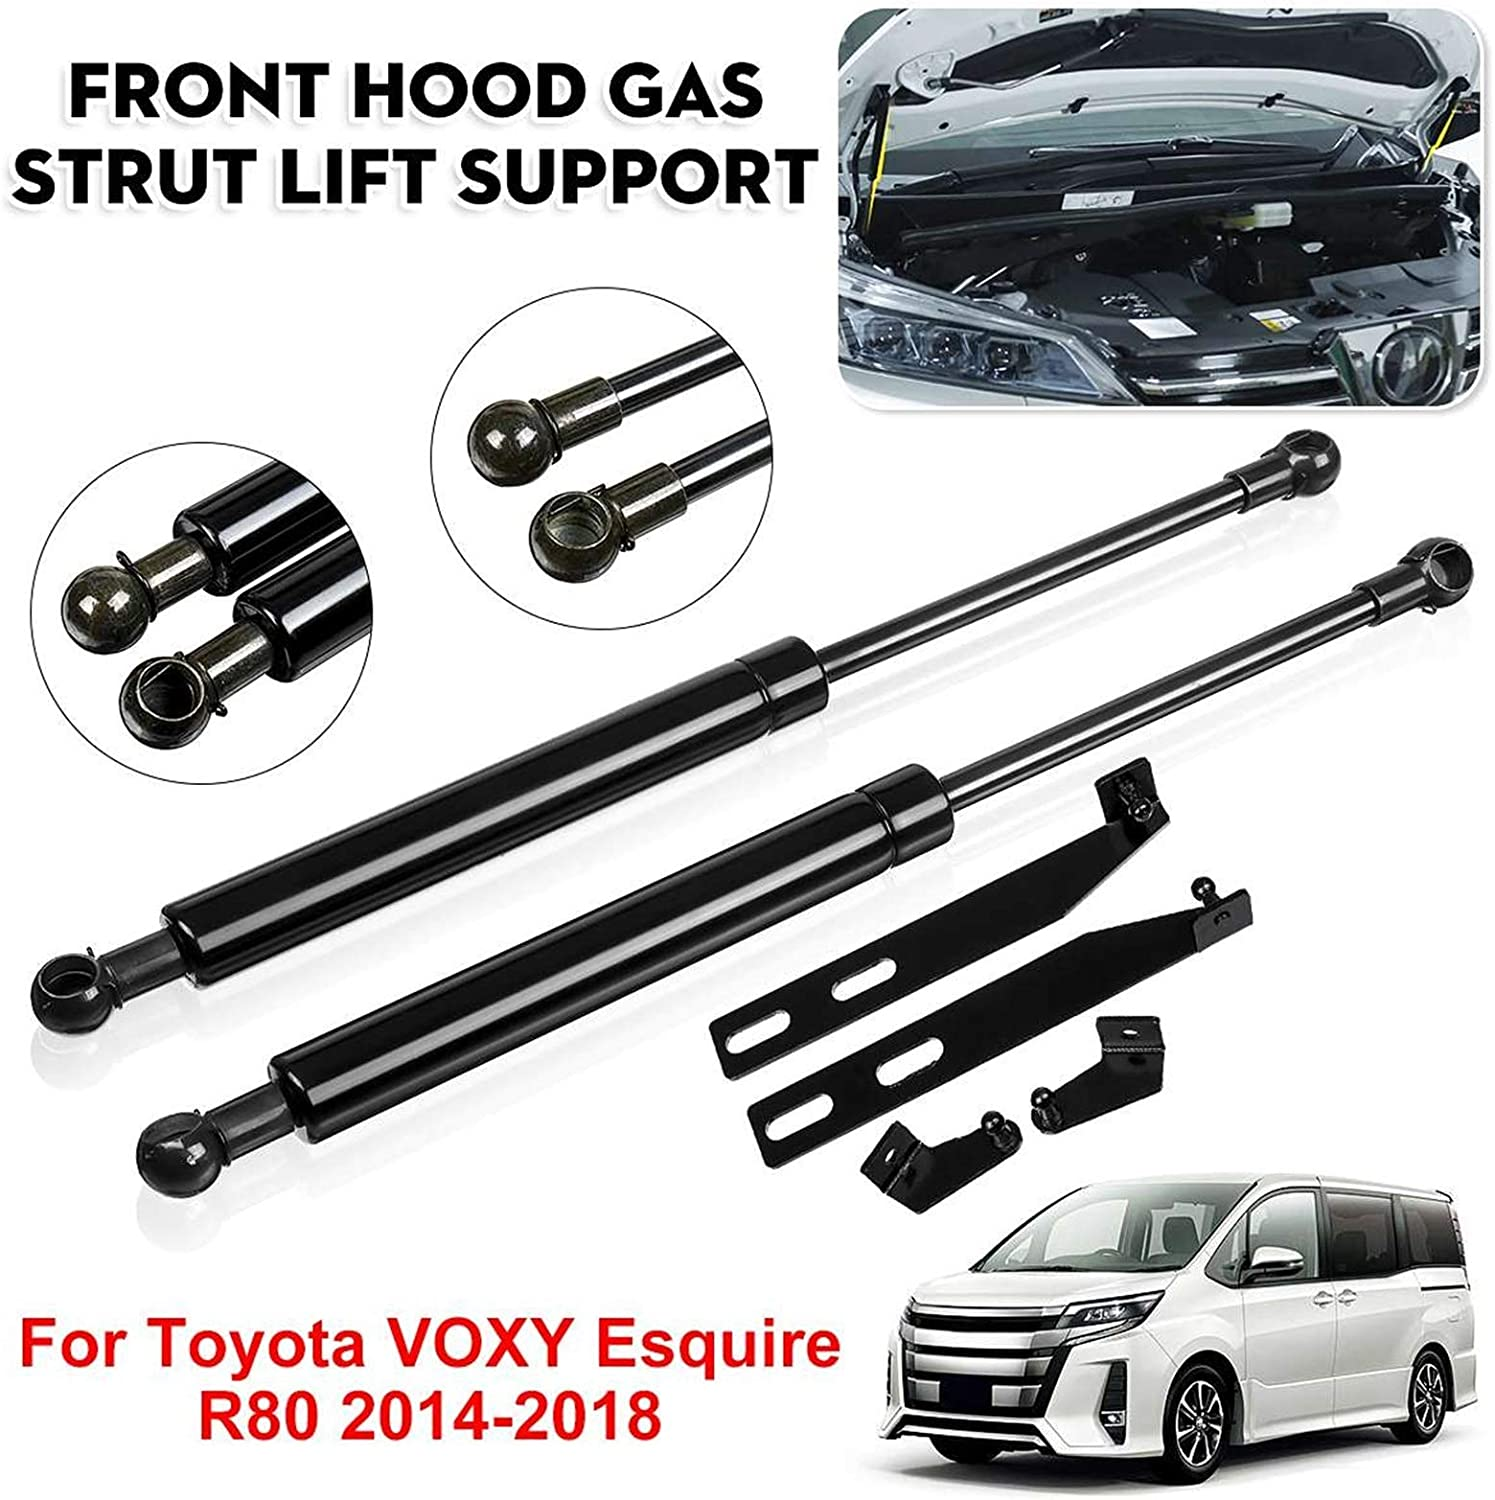 Lift Support Struts for Toyota VOXY R80 Esquire 2015 2016-2 2014 Max Very popular 55% OFF